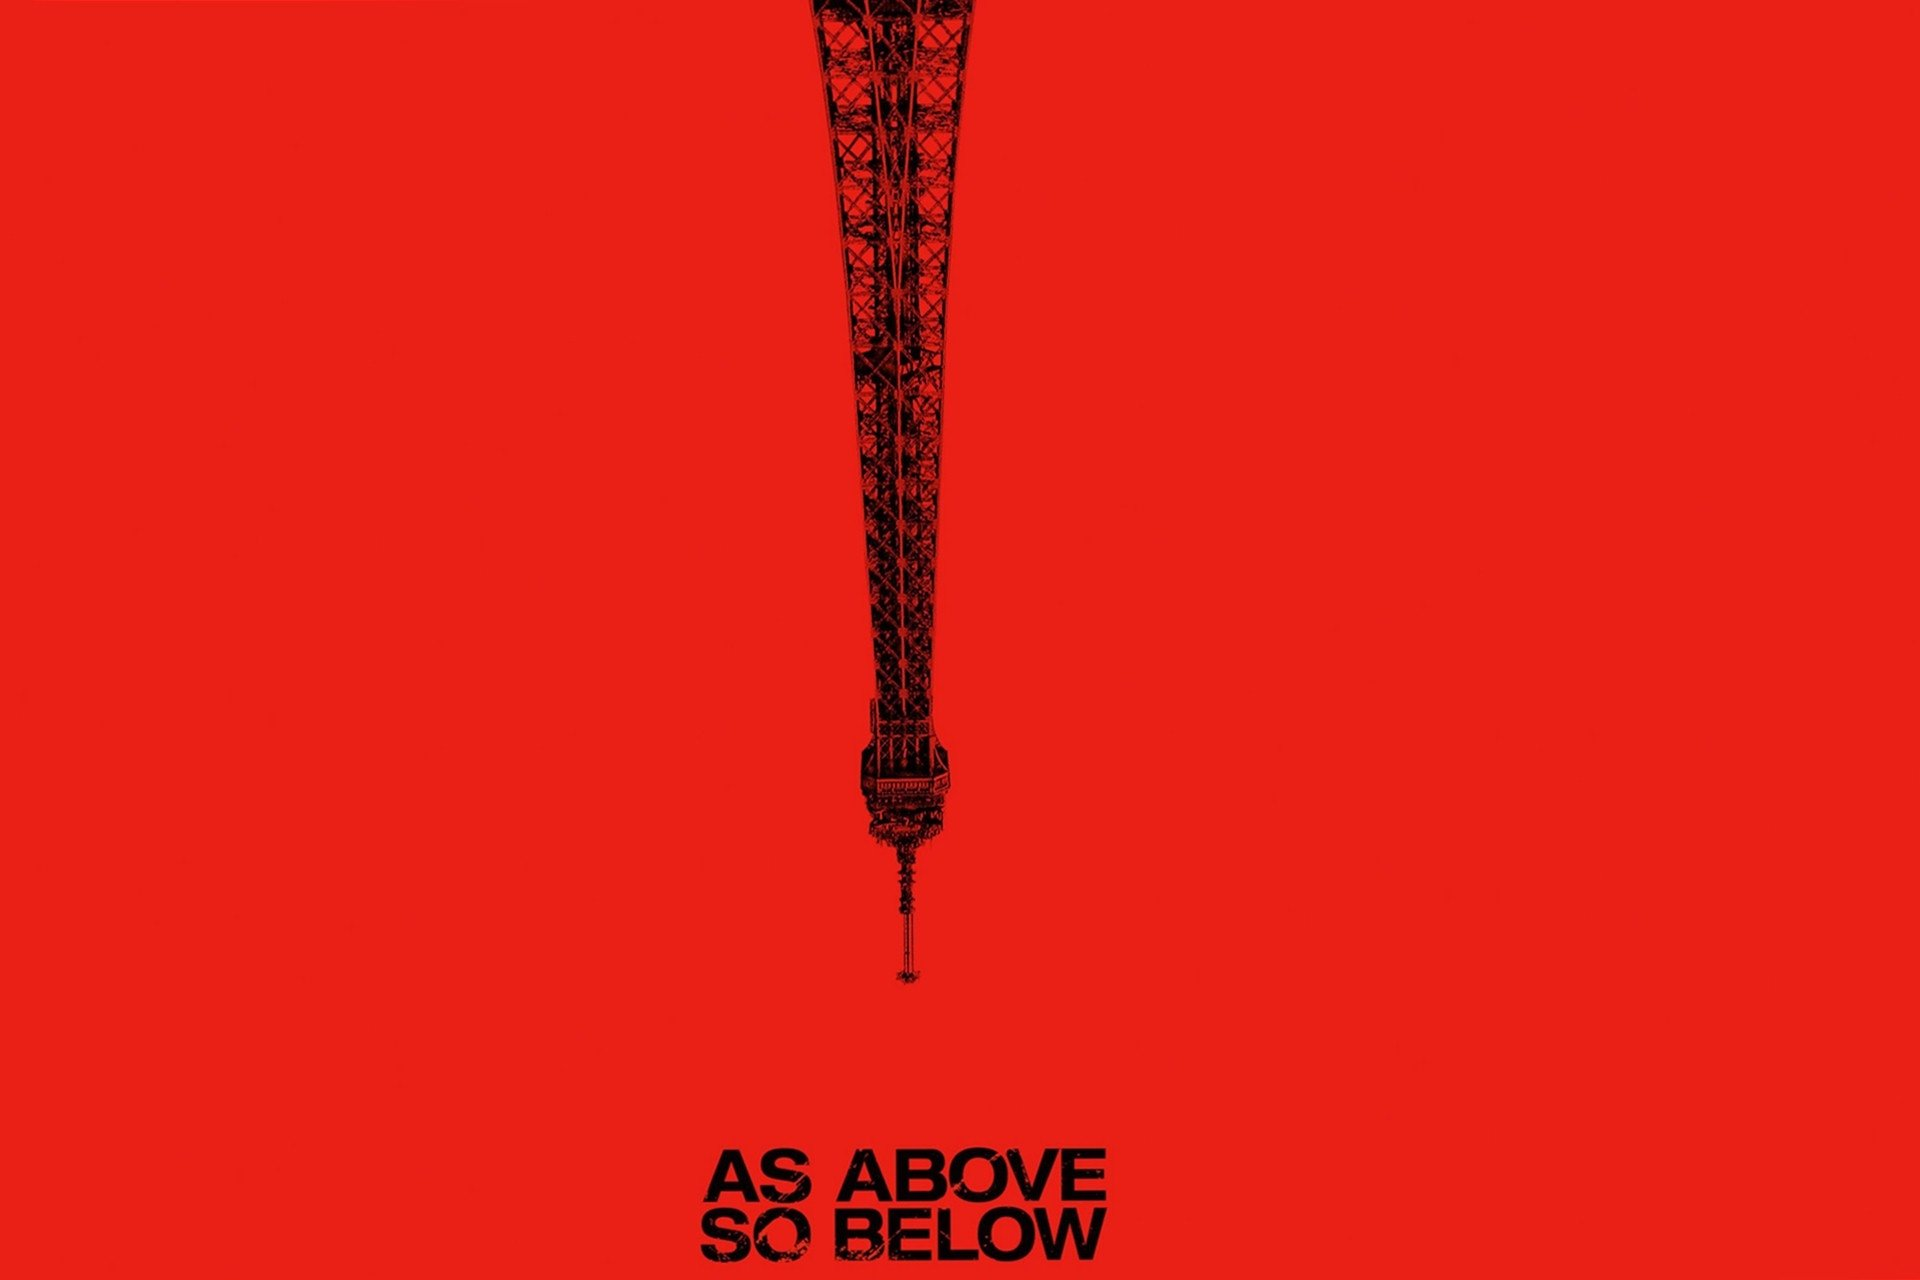 11 As Above So Below Hd Wallpapers Background Images